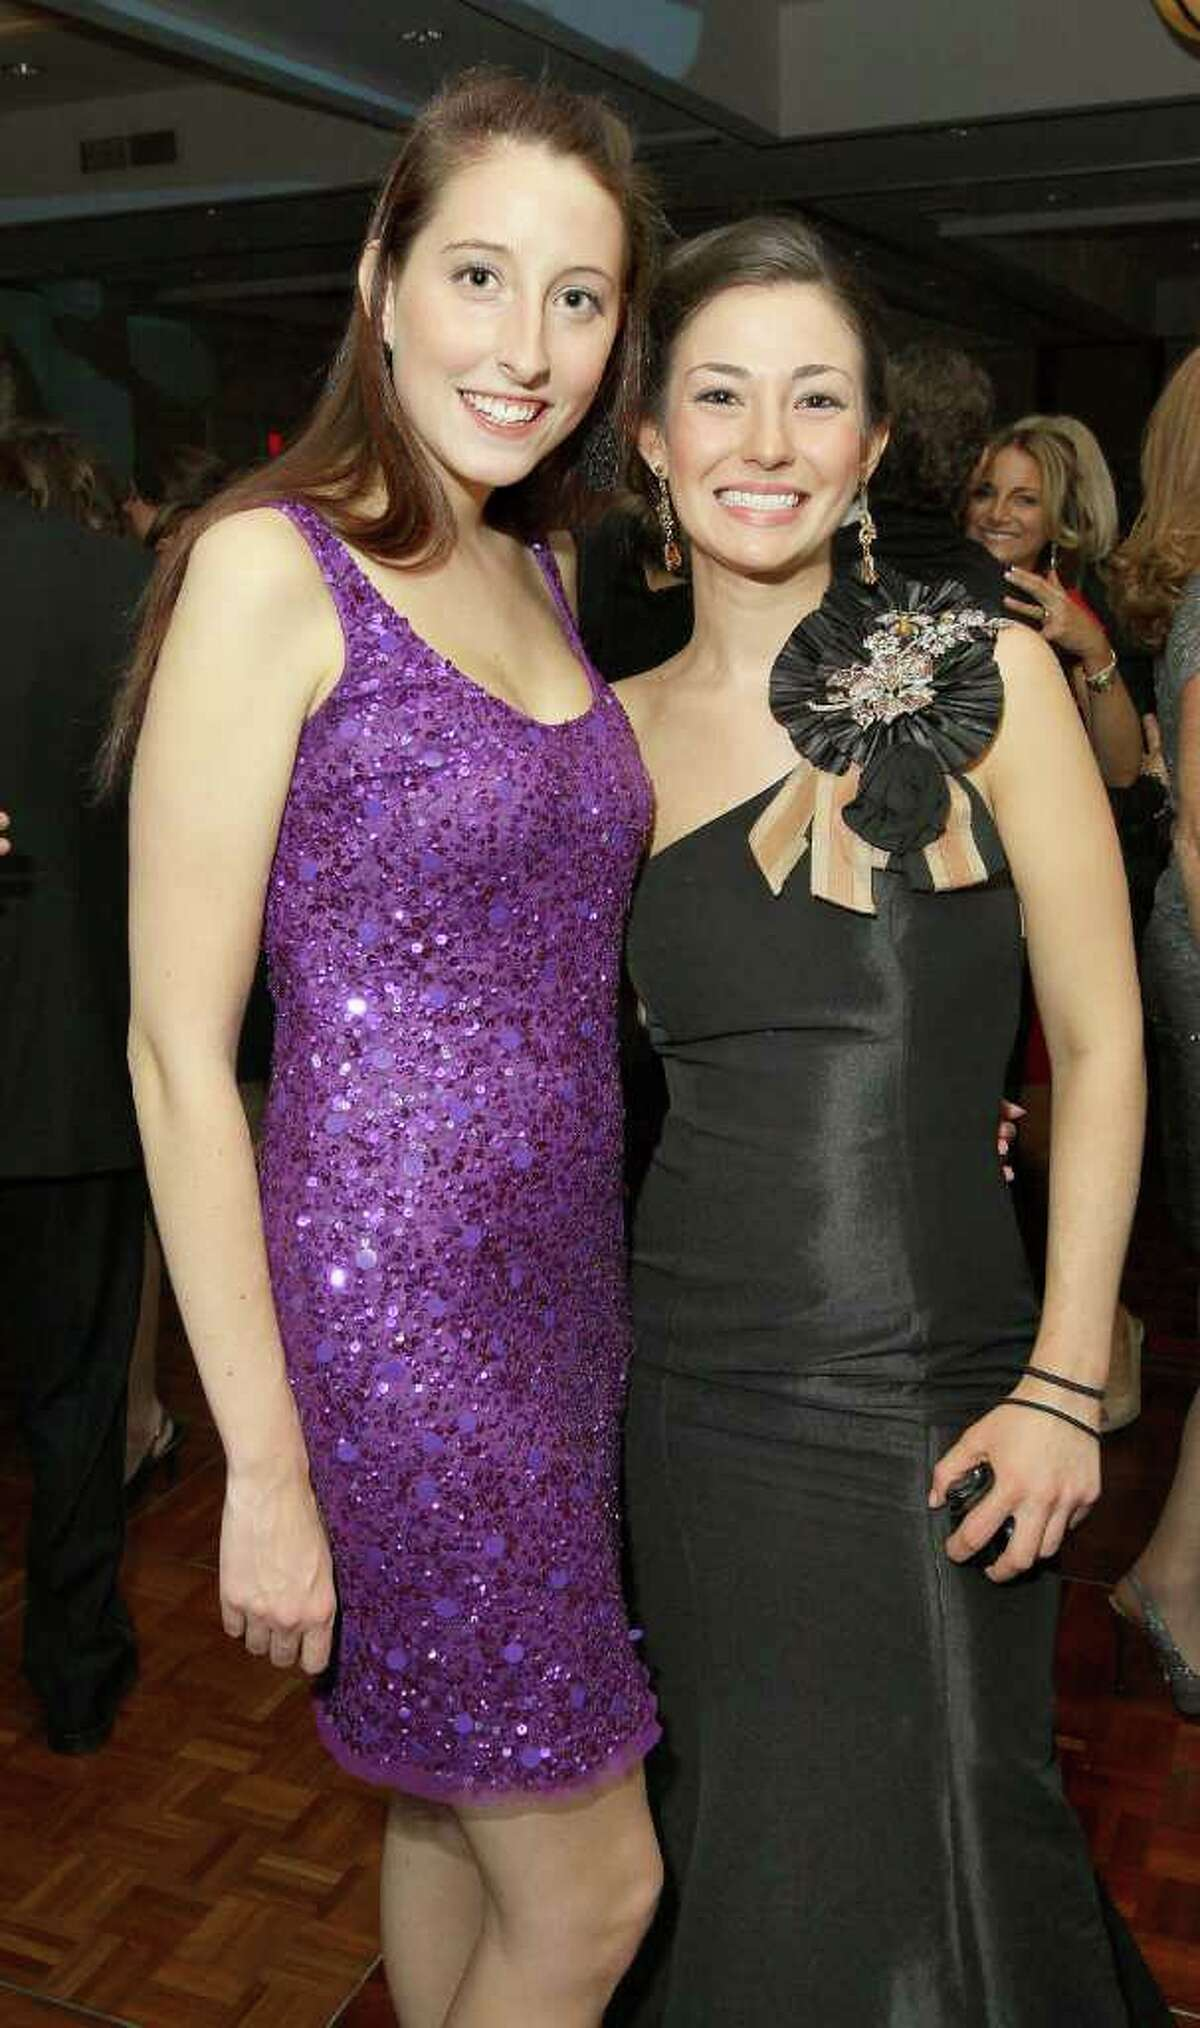 Albany, NY - November 12, 2011 - (Photo by Joe Putrock/Special to the Times Union) - Amanda Smith(left) and Katelyn Swider(right) during the 15th Annual Celestial Ball to benefit the Northeastern New York Chapter of the Juvenile Diabetes Research Foundation.